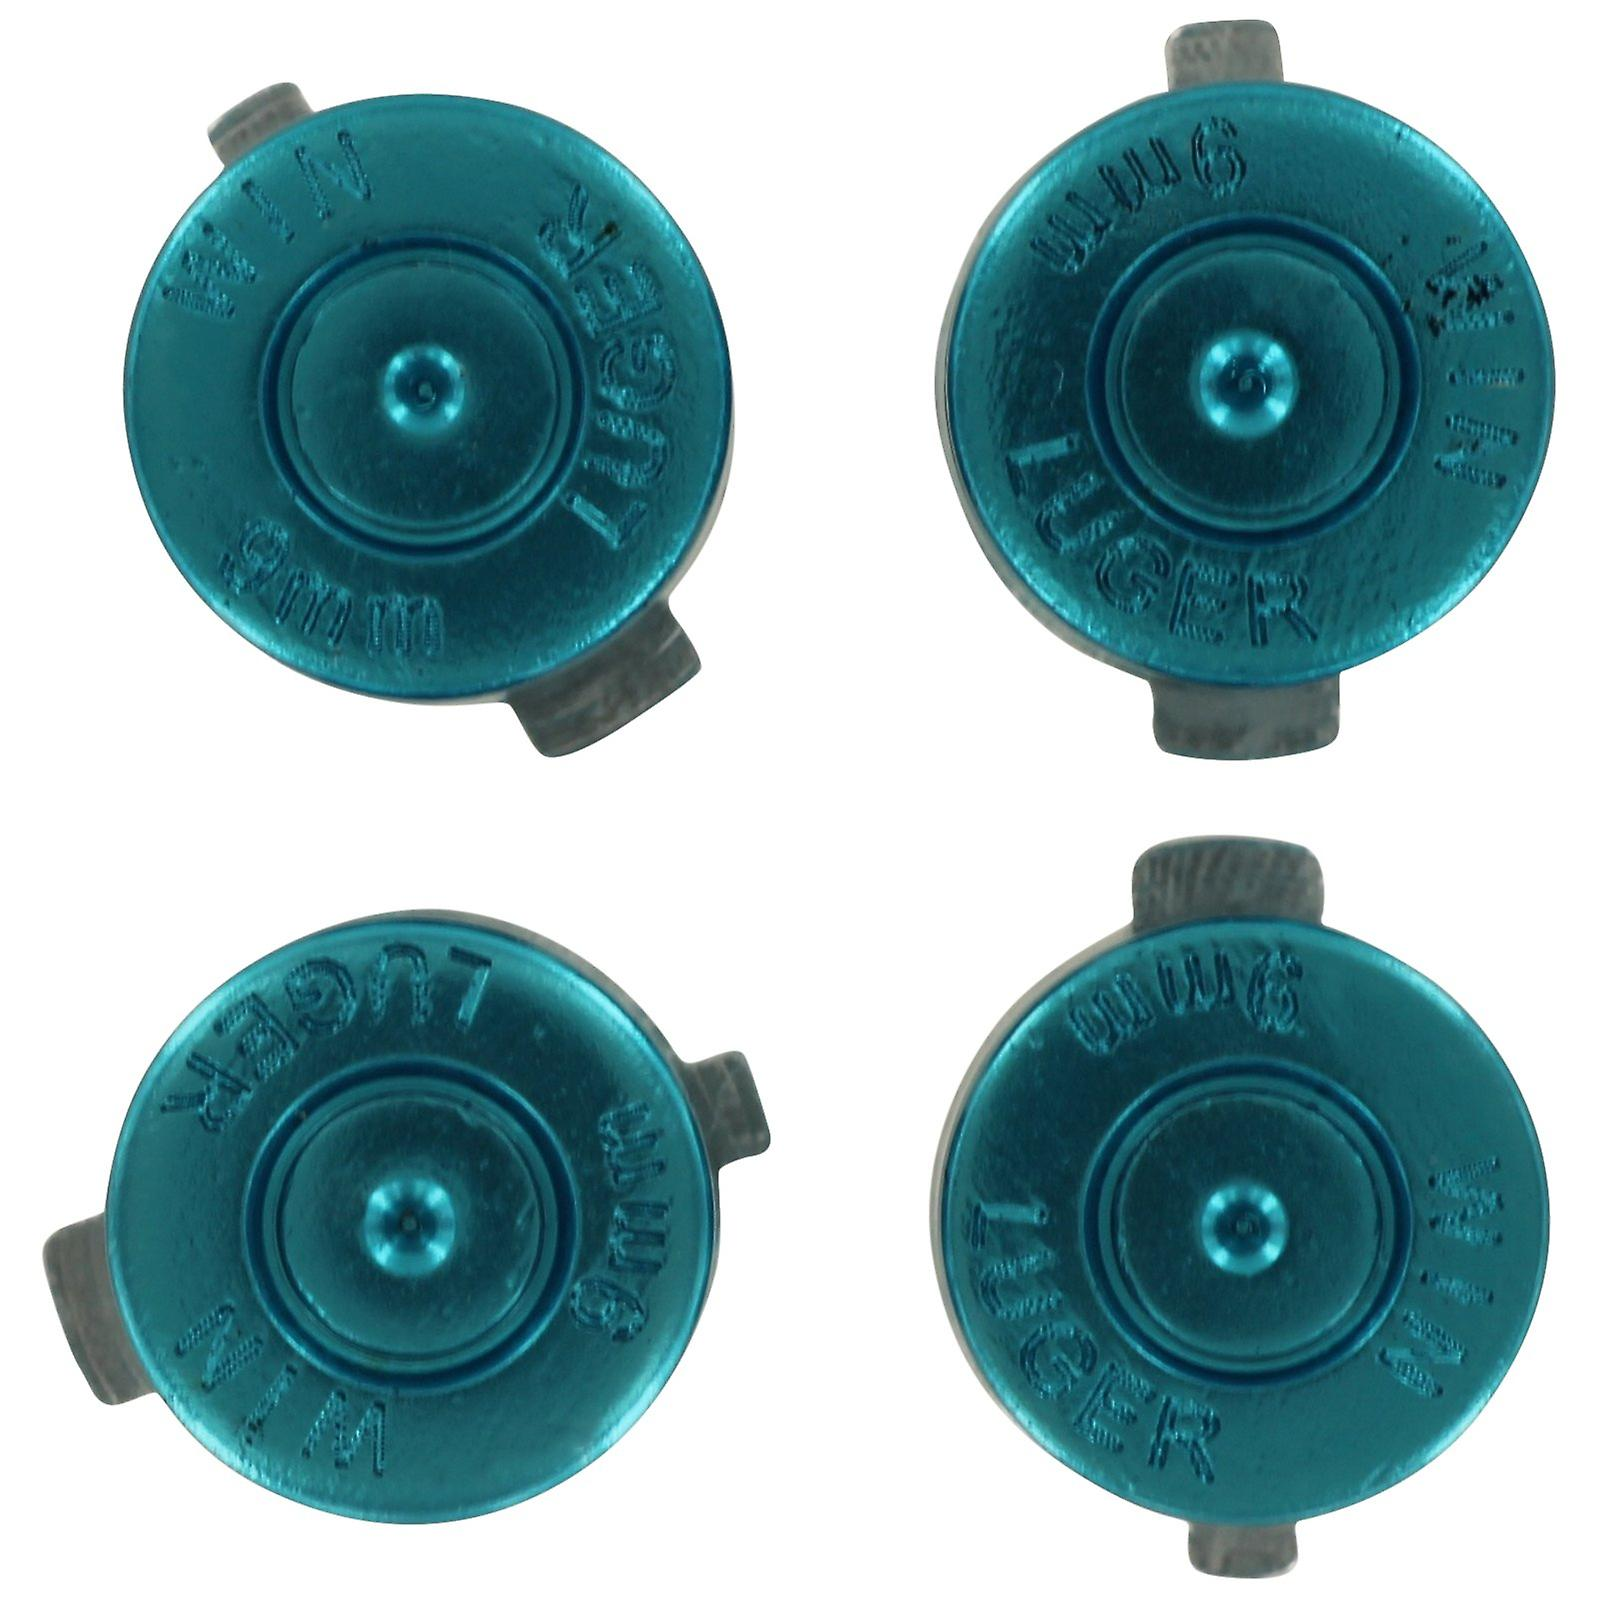 Aluminium metal action bullet button set for sony ps4 controllers - blue